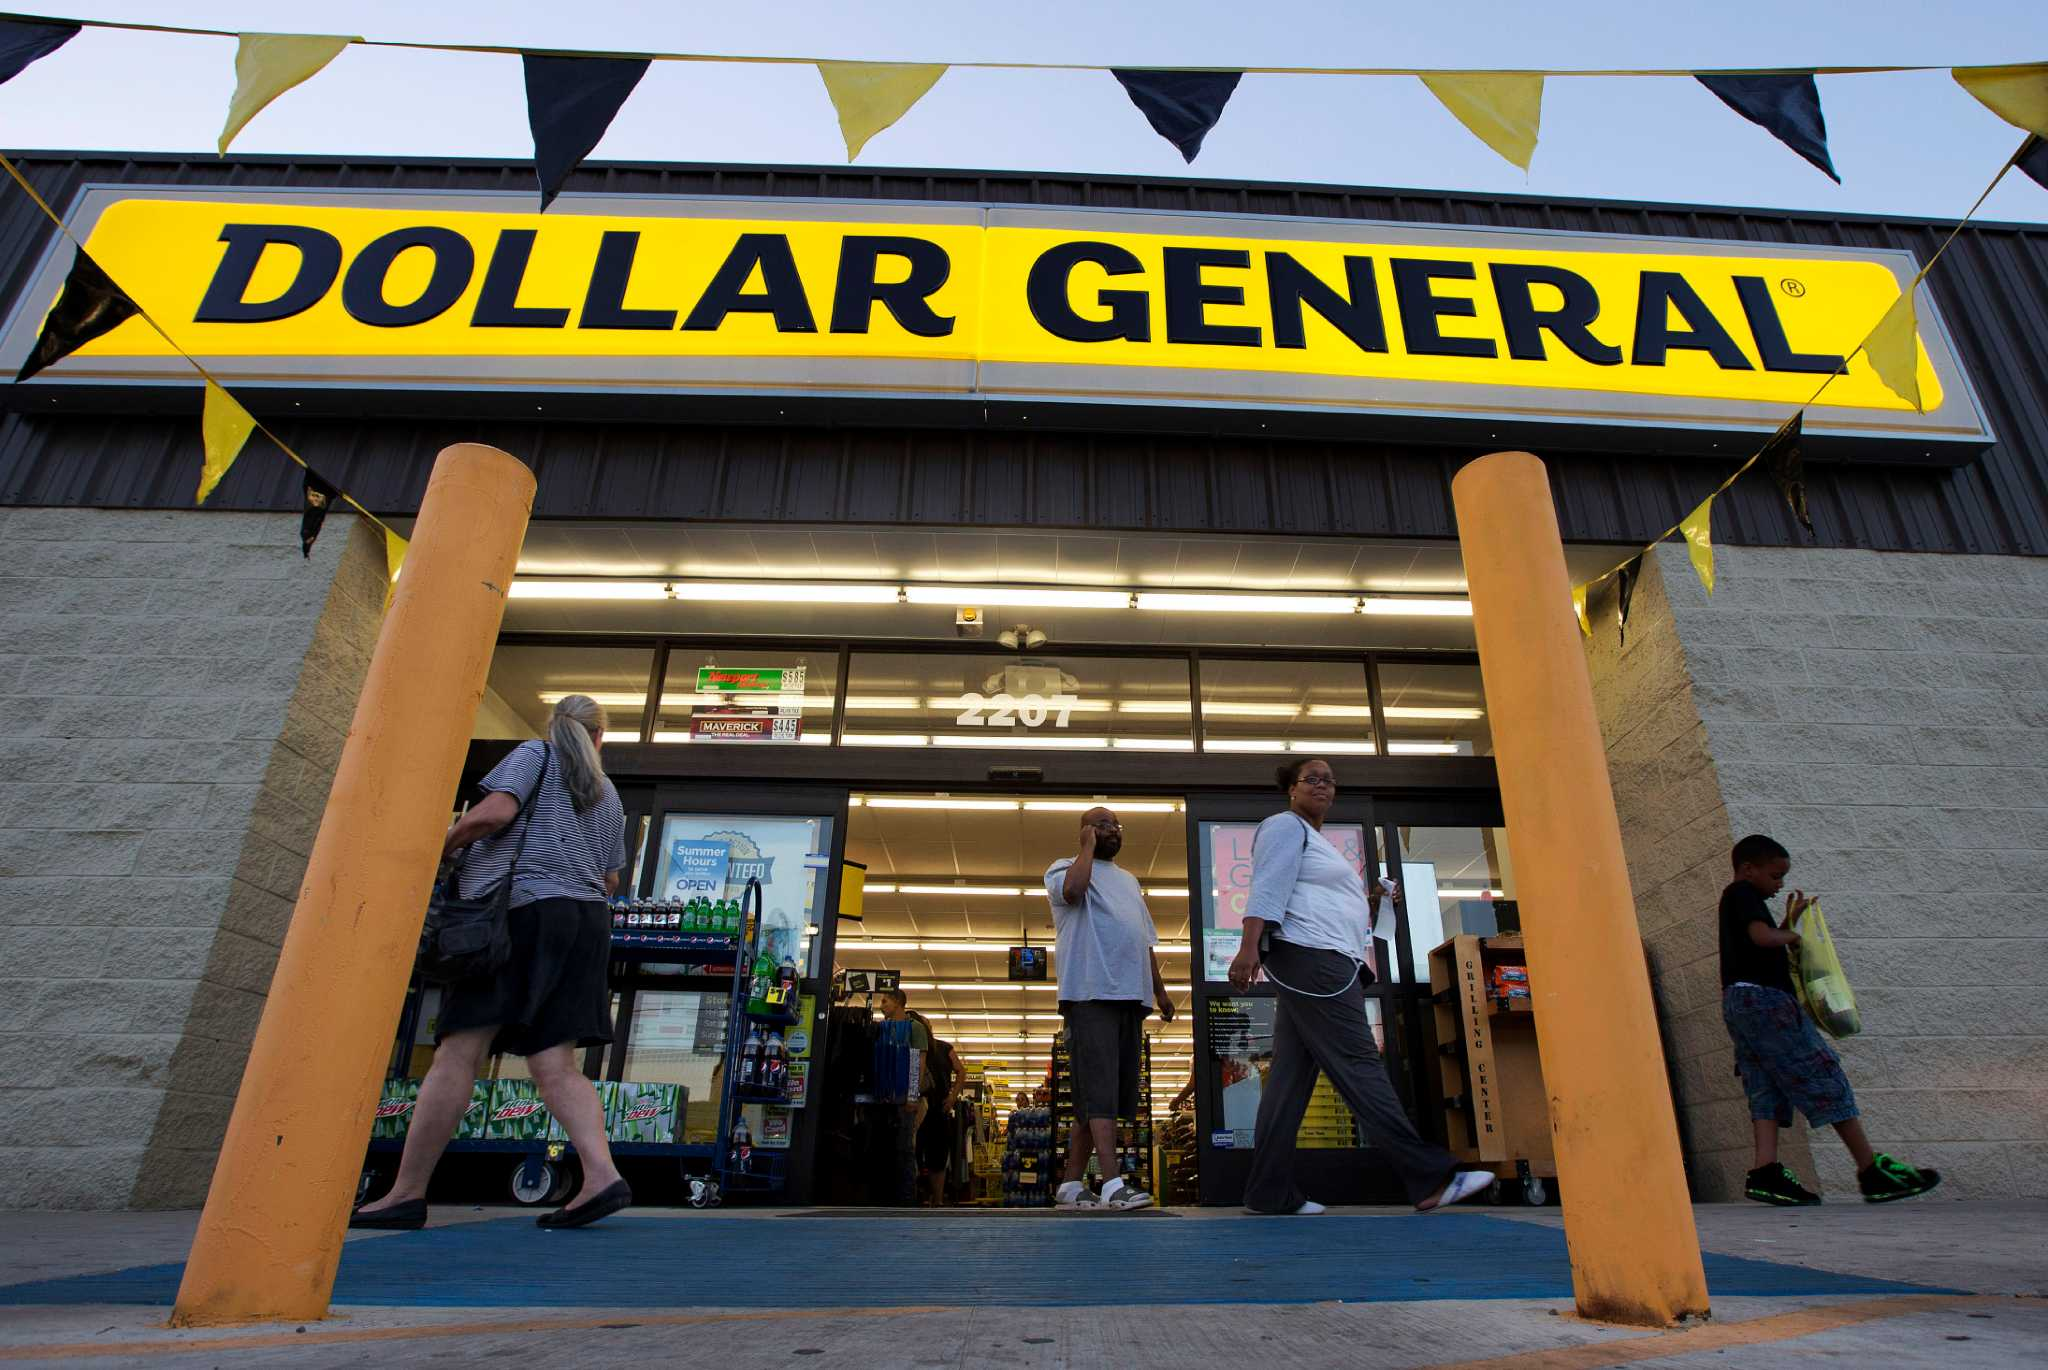 Dollar General Opens New Houston Store